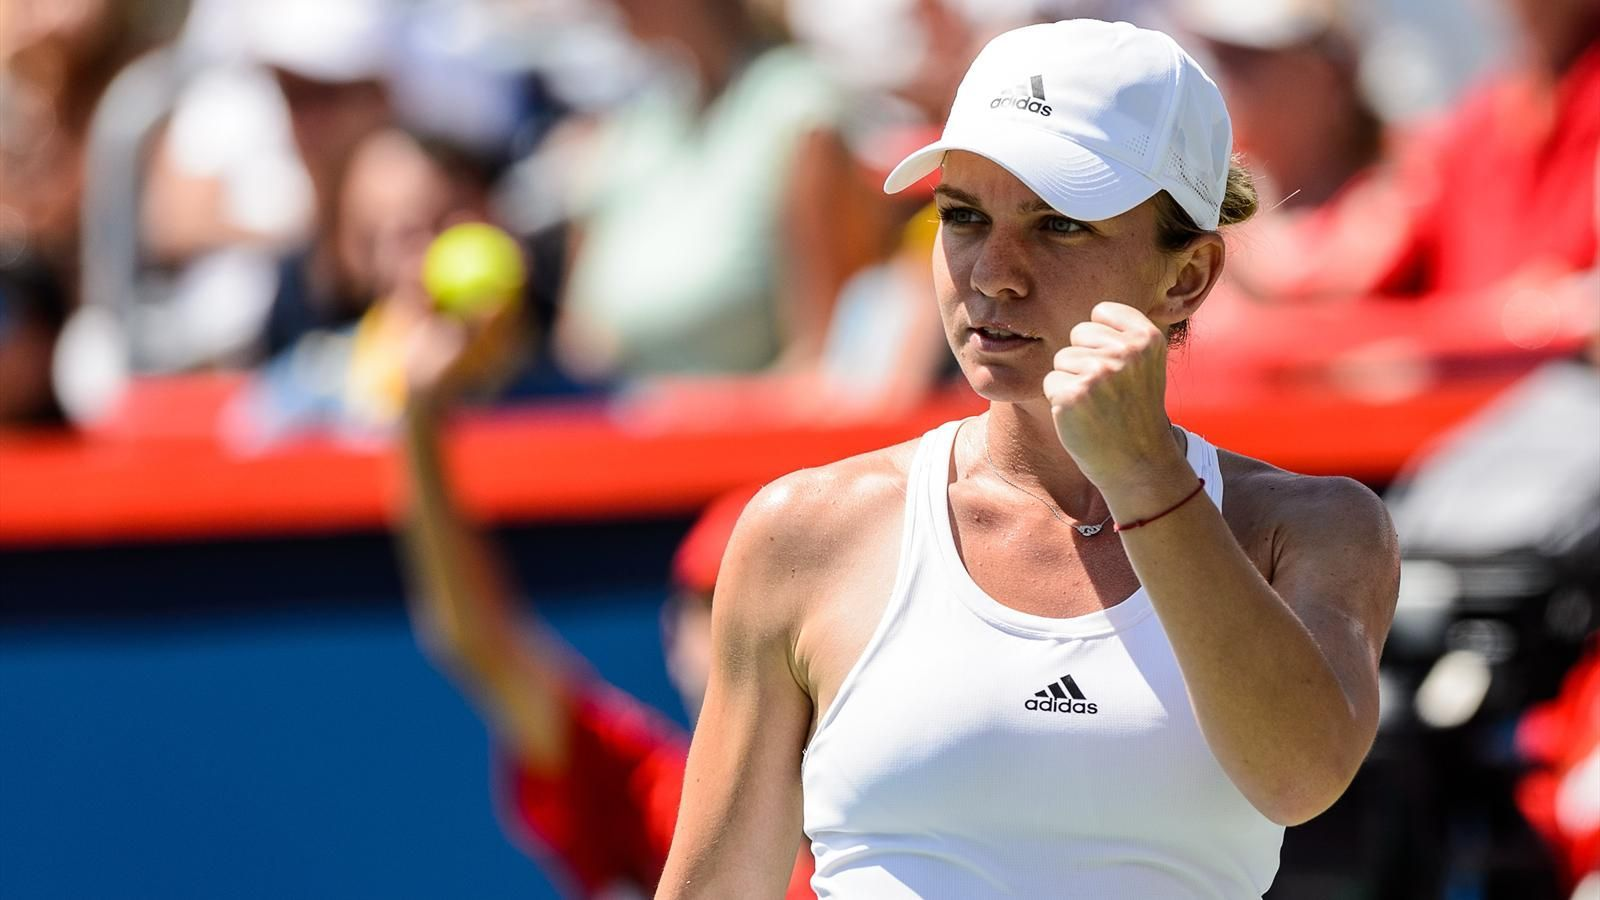 Halep outclasses Keys to take lift the cup at Montreal